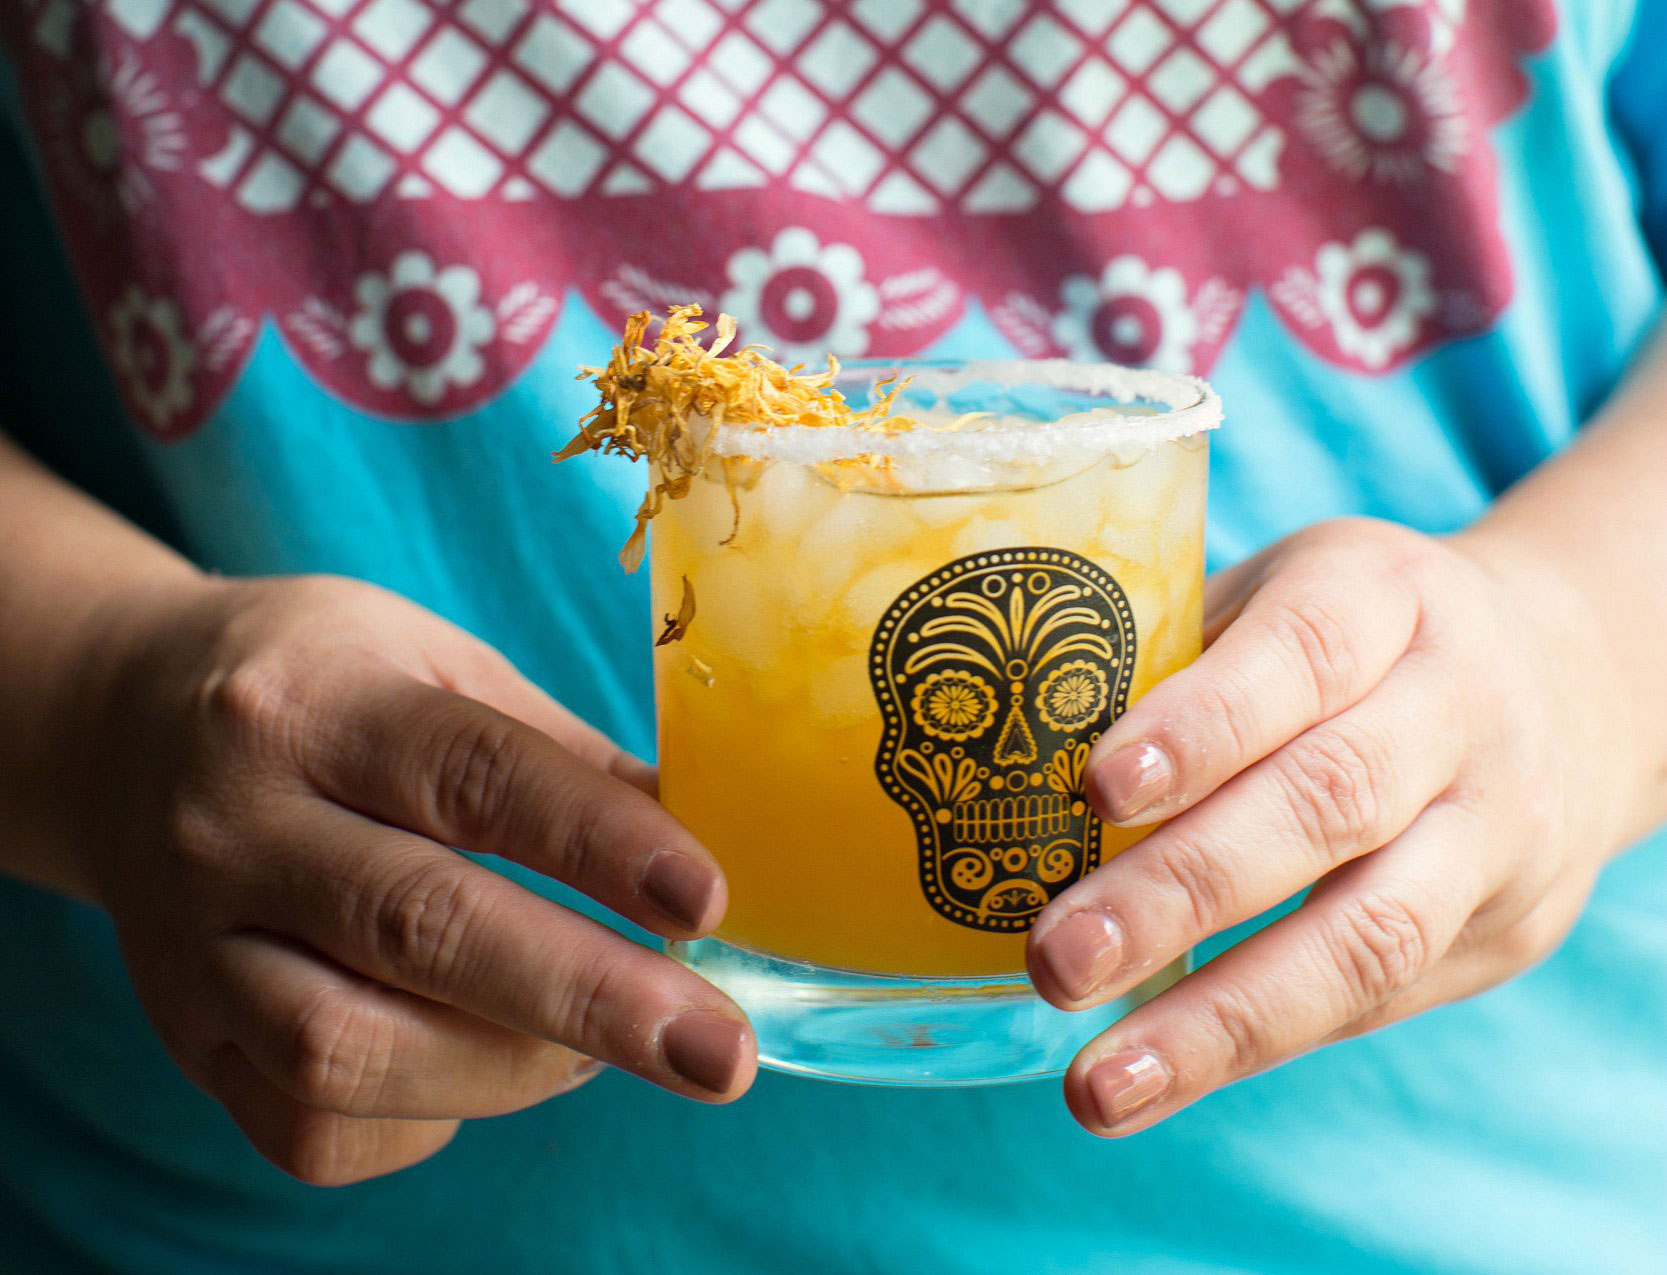 RX_1710_Day of the Dead Recipes Sweet Life_Mango Marigold Margarita